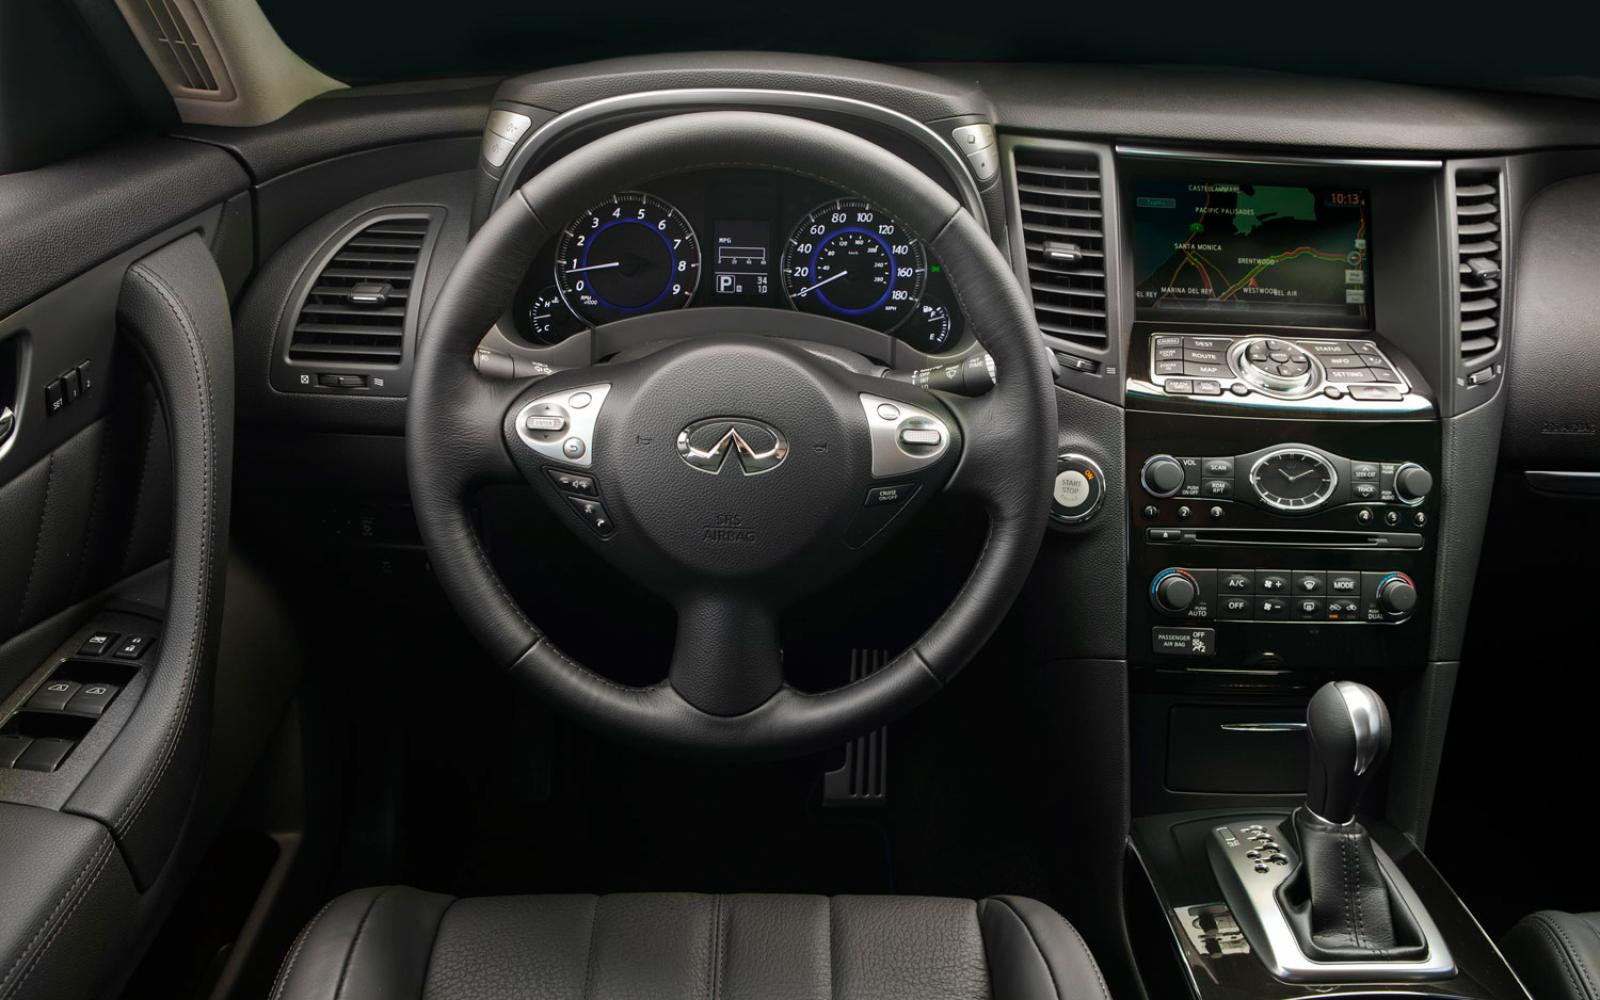 2013 infiniti fx information and photos zombiedrive 800 1024 1280 1600 origin 2013 infiniti fx vanachro Choice Image